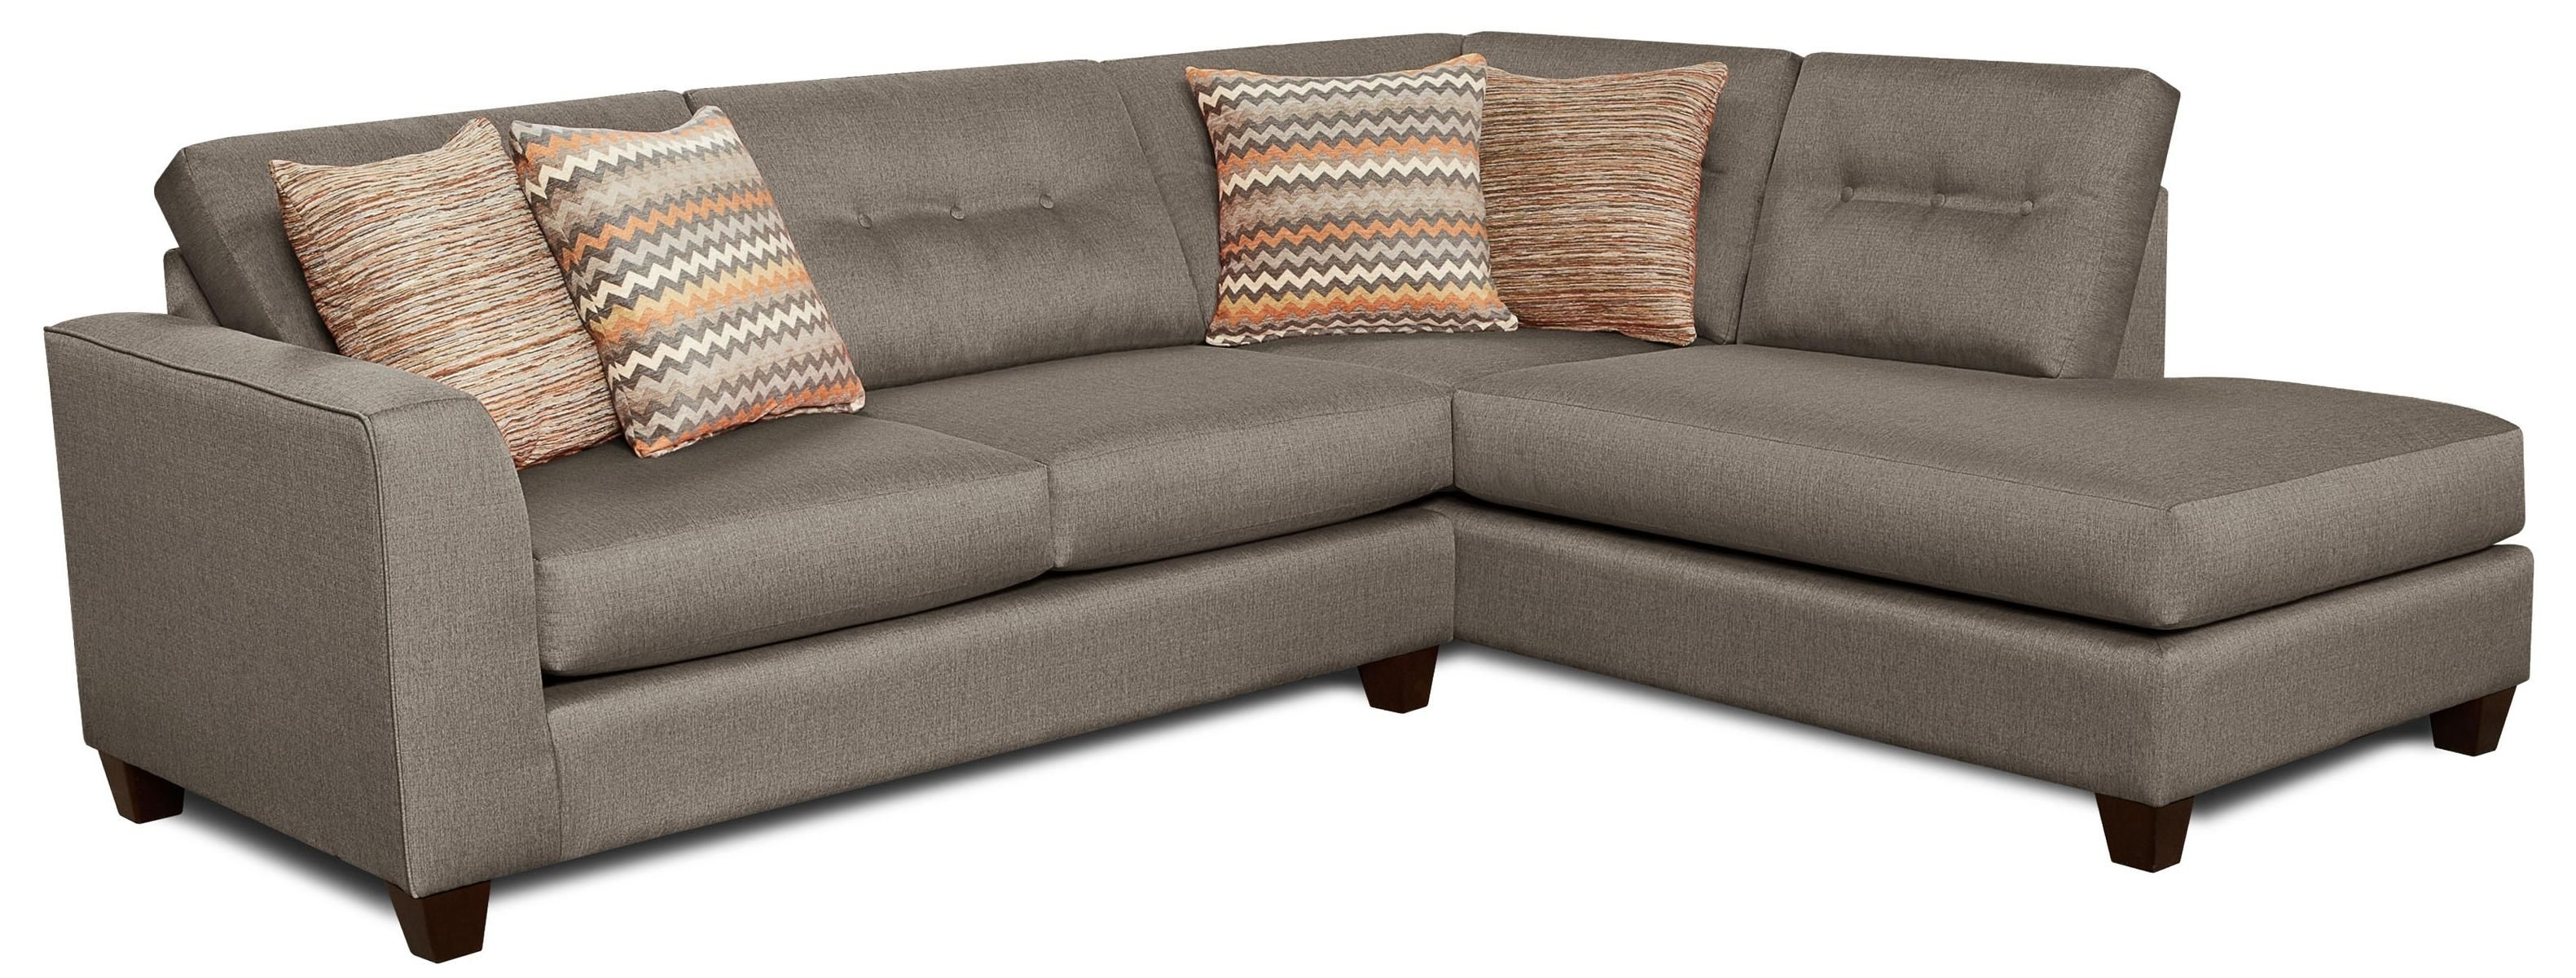 Fandago Flame Sectional Sofafusion Furniture | Dc House throughout London Optical Reversible Sofa Chaise Sectionals (Image 11 of 30)